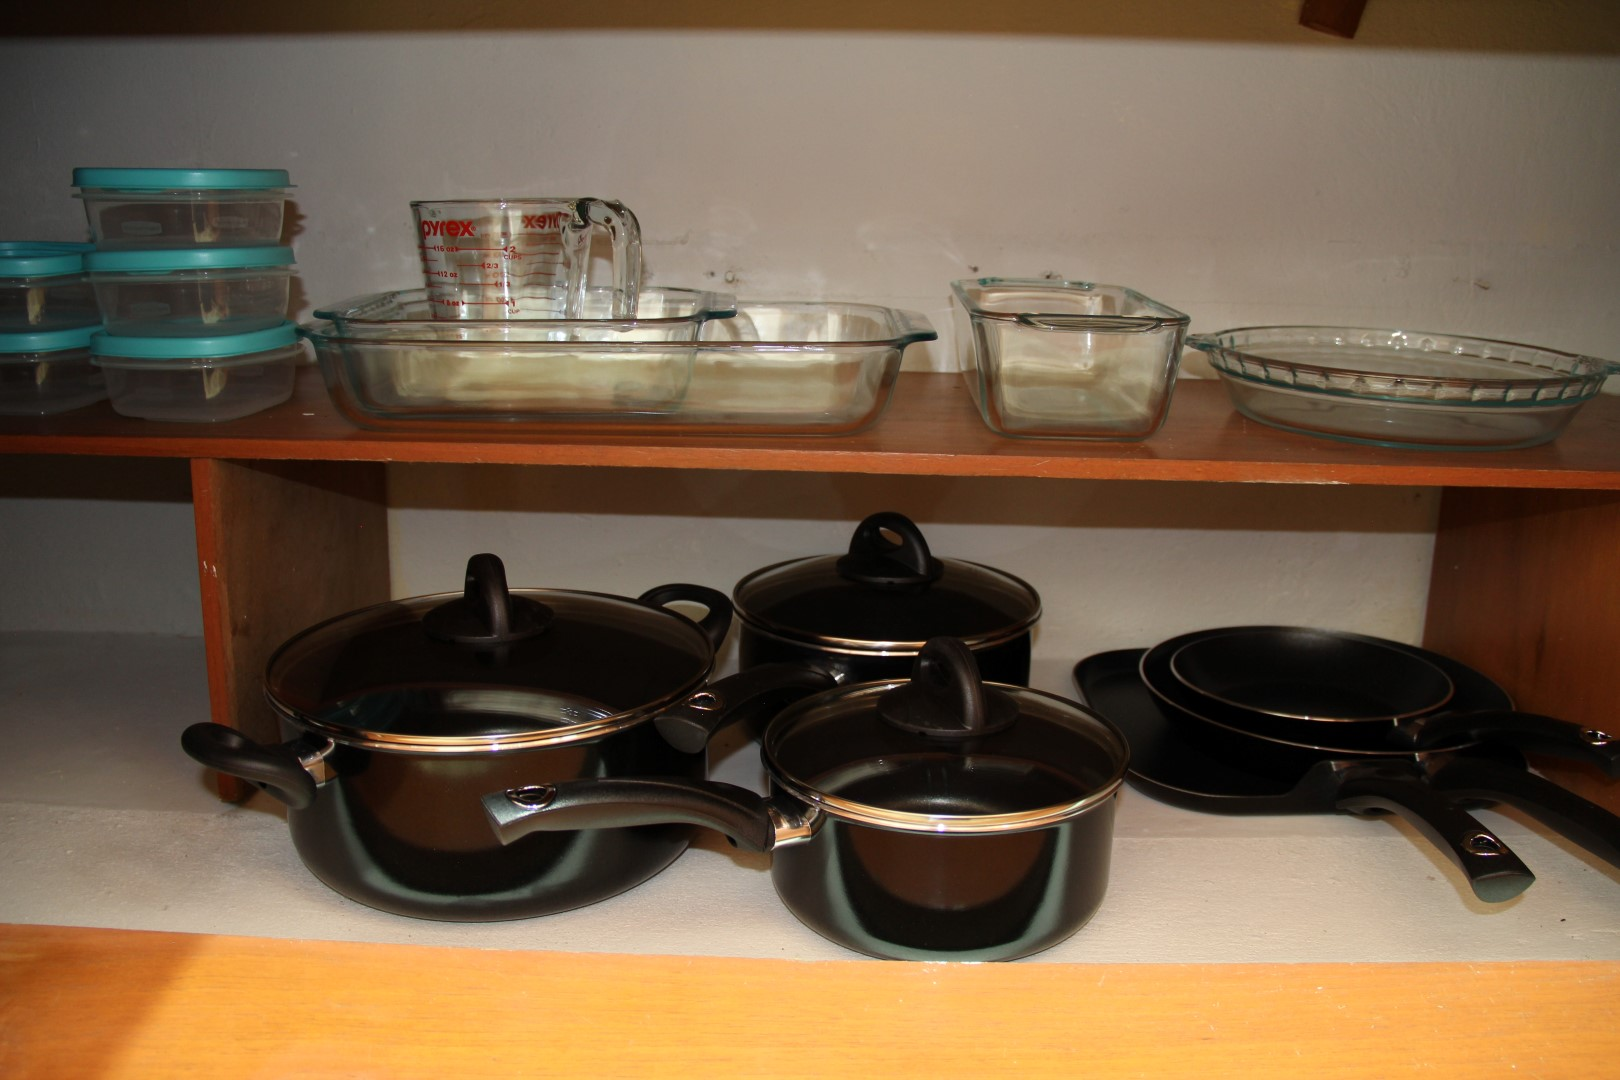 Pots, pans and bakeware